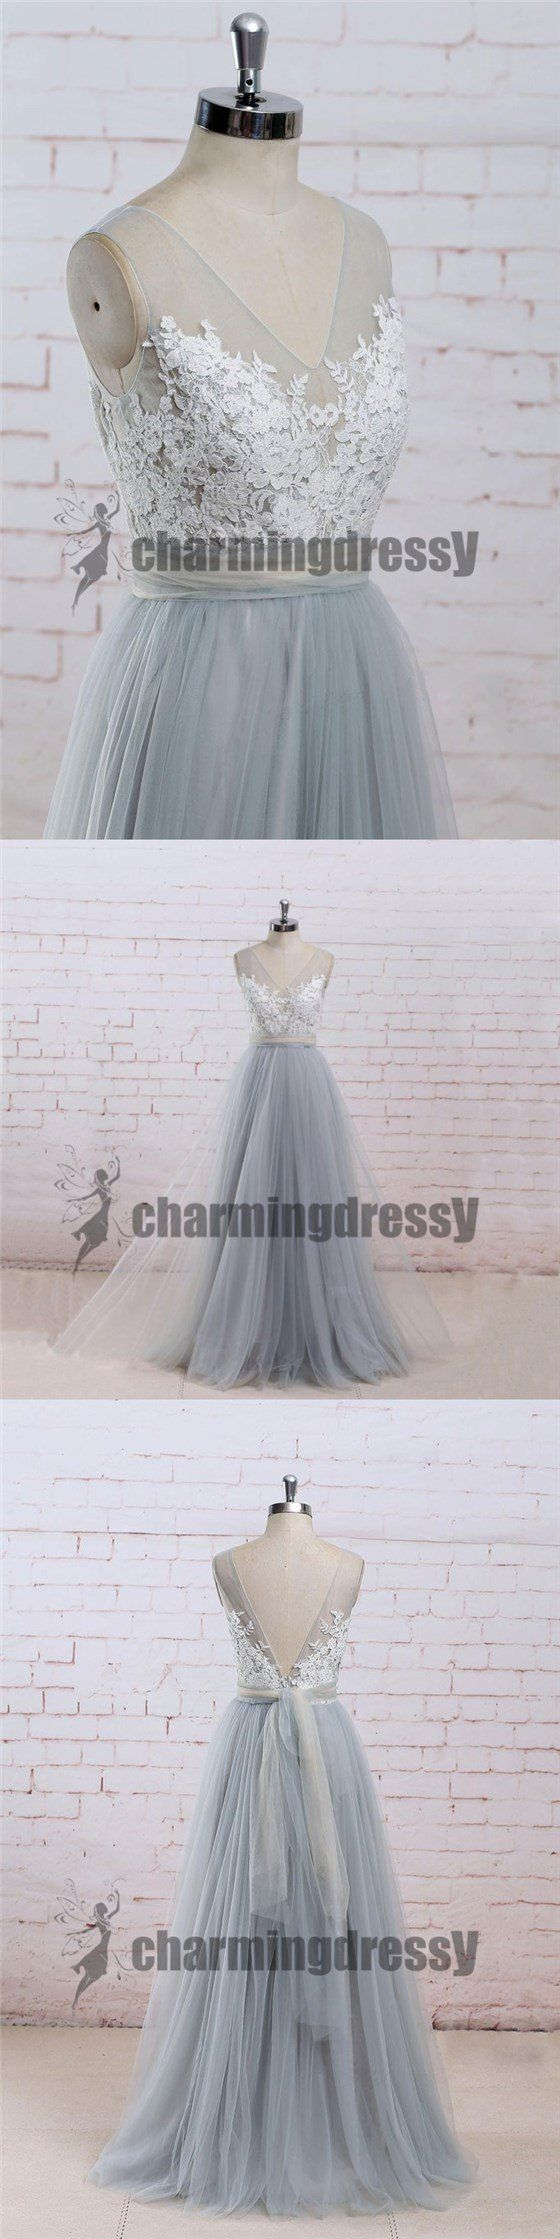 Vneck lace tulle sleeveless prom dresses custom popular new